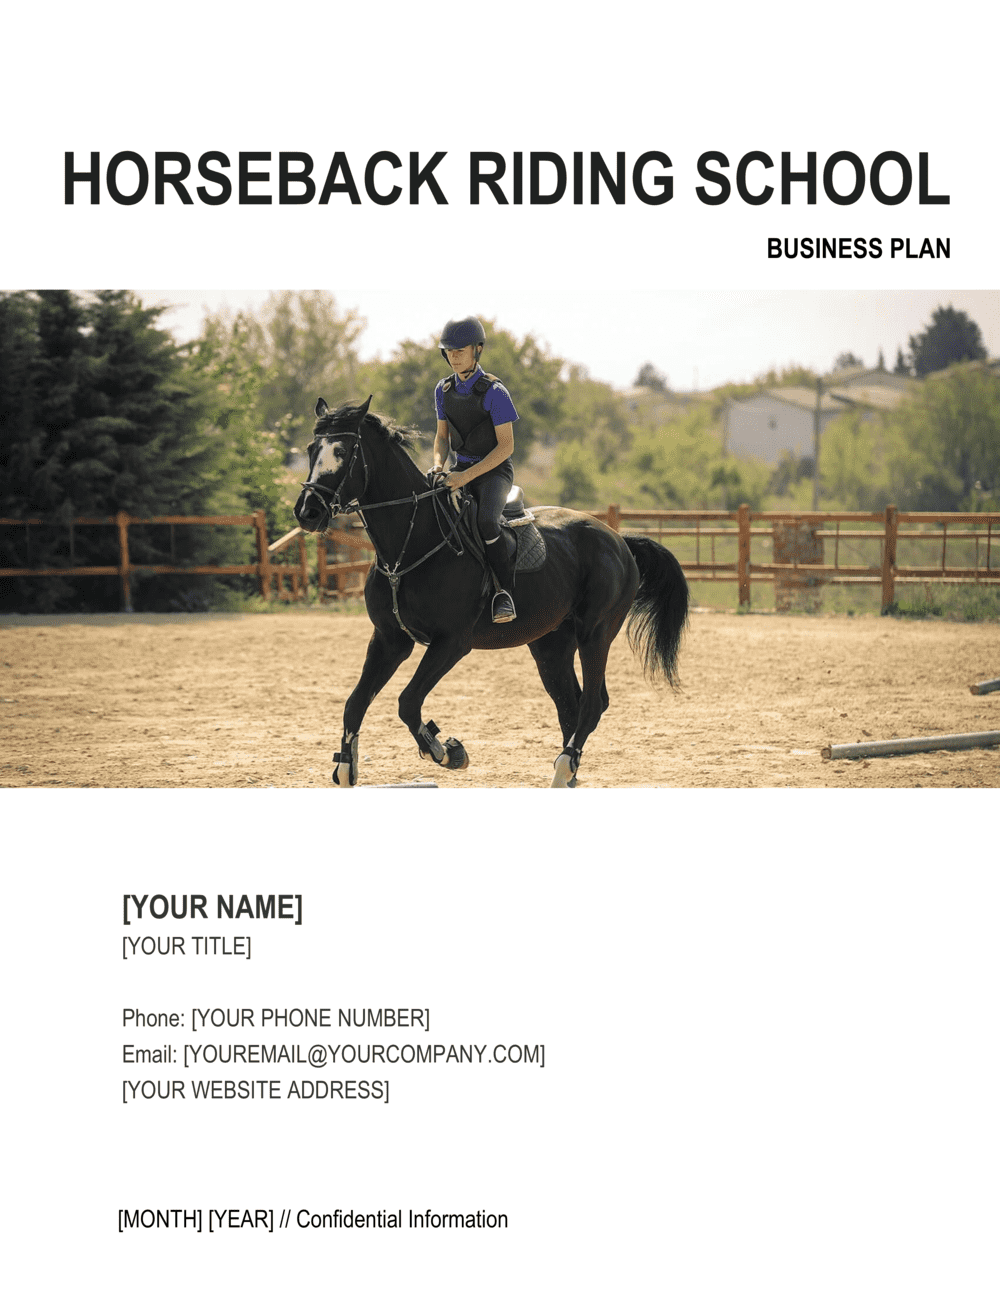 Business-in-a-Box's Horseback Riding School Business Plan Template